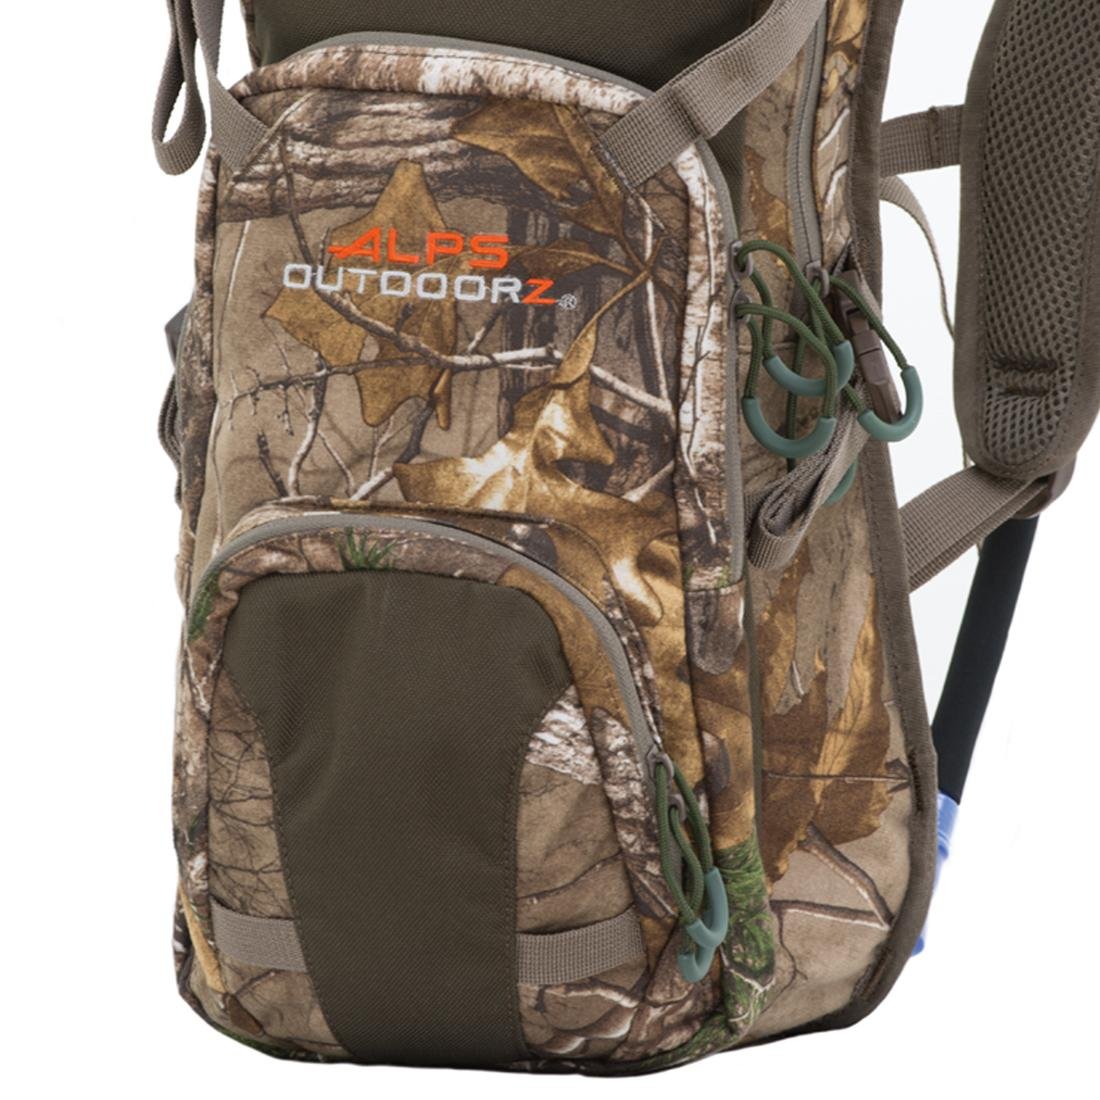 Amazon.com : ALPS OutdoorZ Willow Creek Hunting Pack : Hiking Daypacks